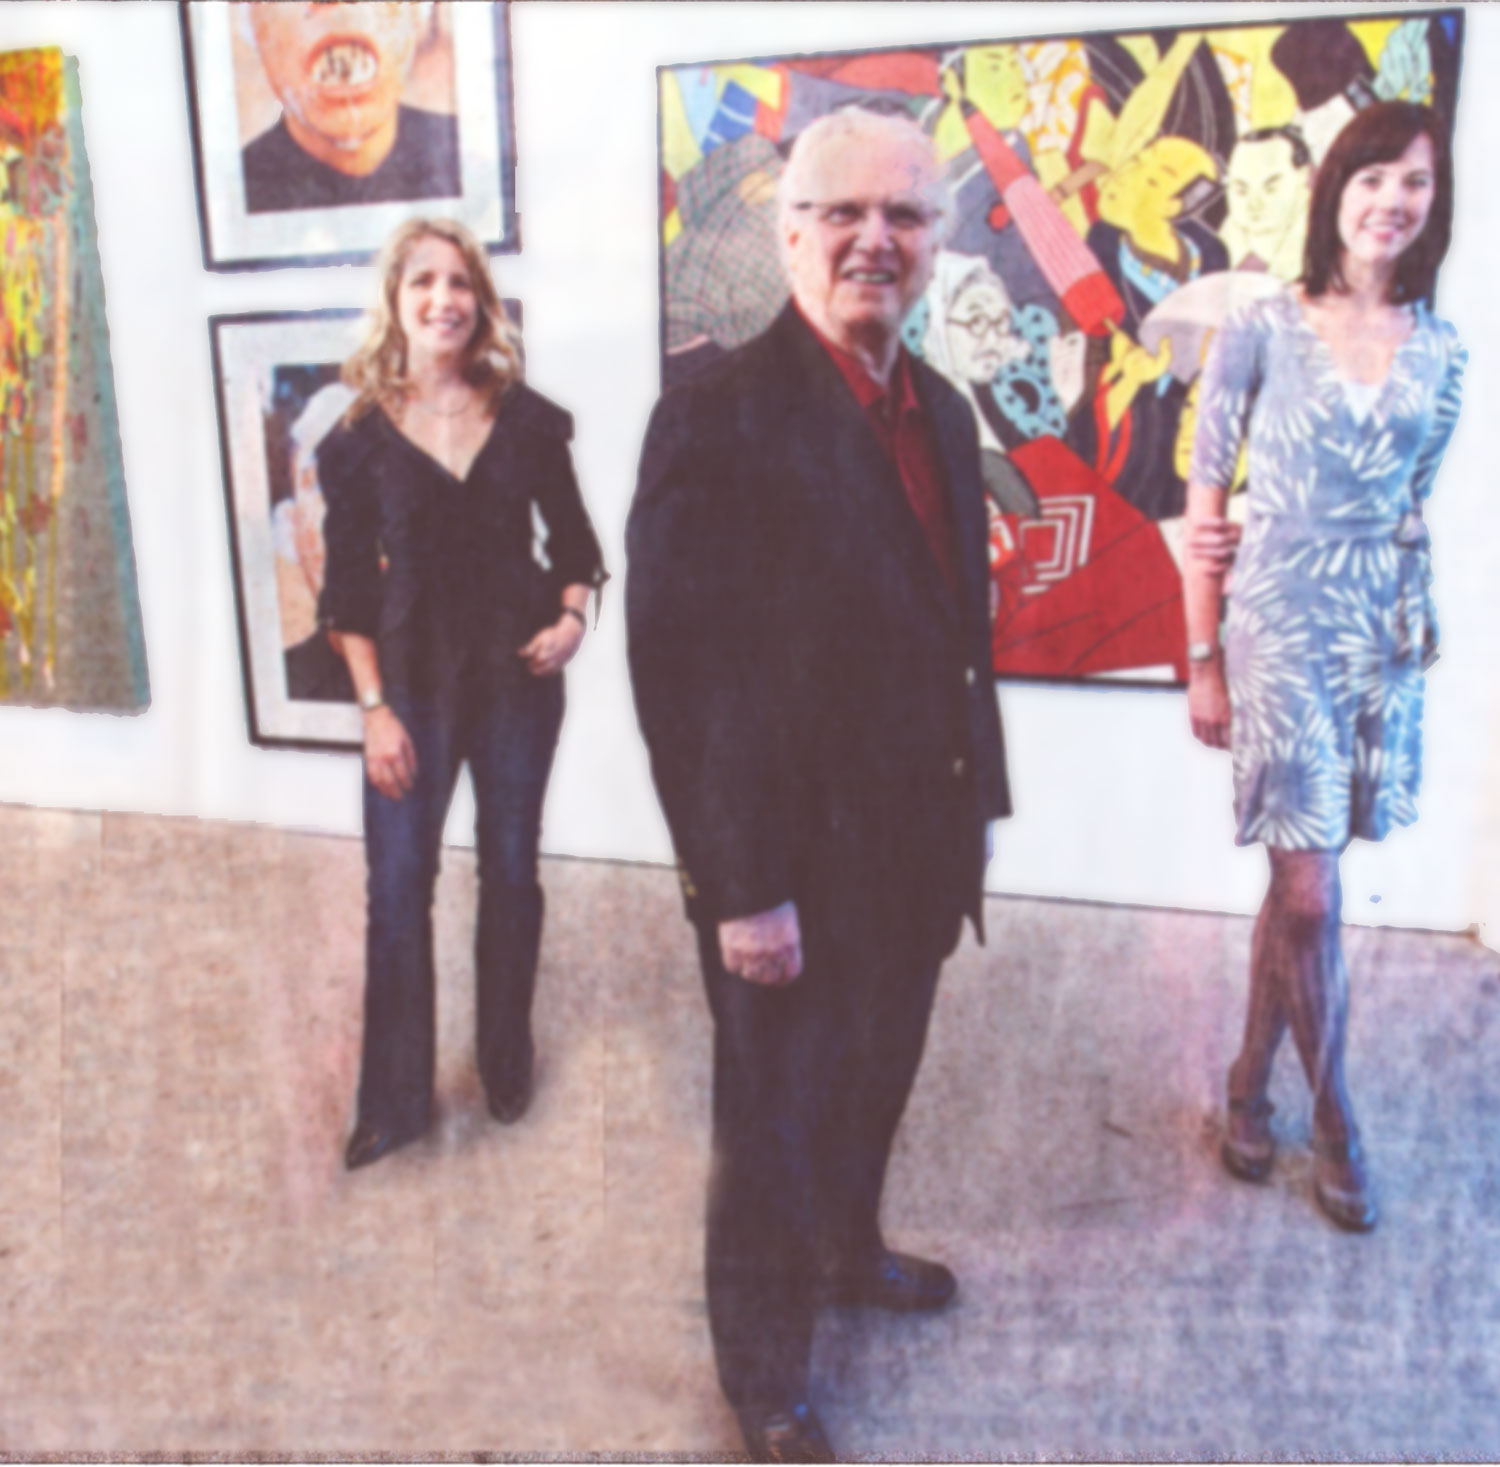 Crossroads gallery owner Byron Cohen and his daughter Toma Wolff (left) will be closing the gallery at 2020 Baltimore and continuing the business online with their new partner Charlotte Matthews (right).